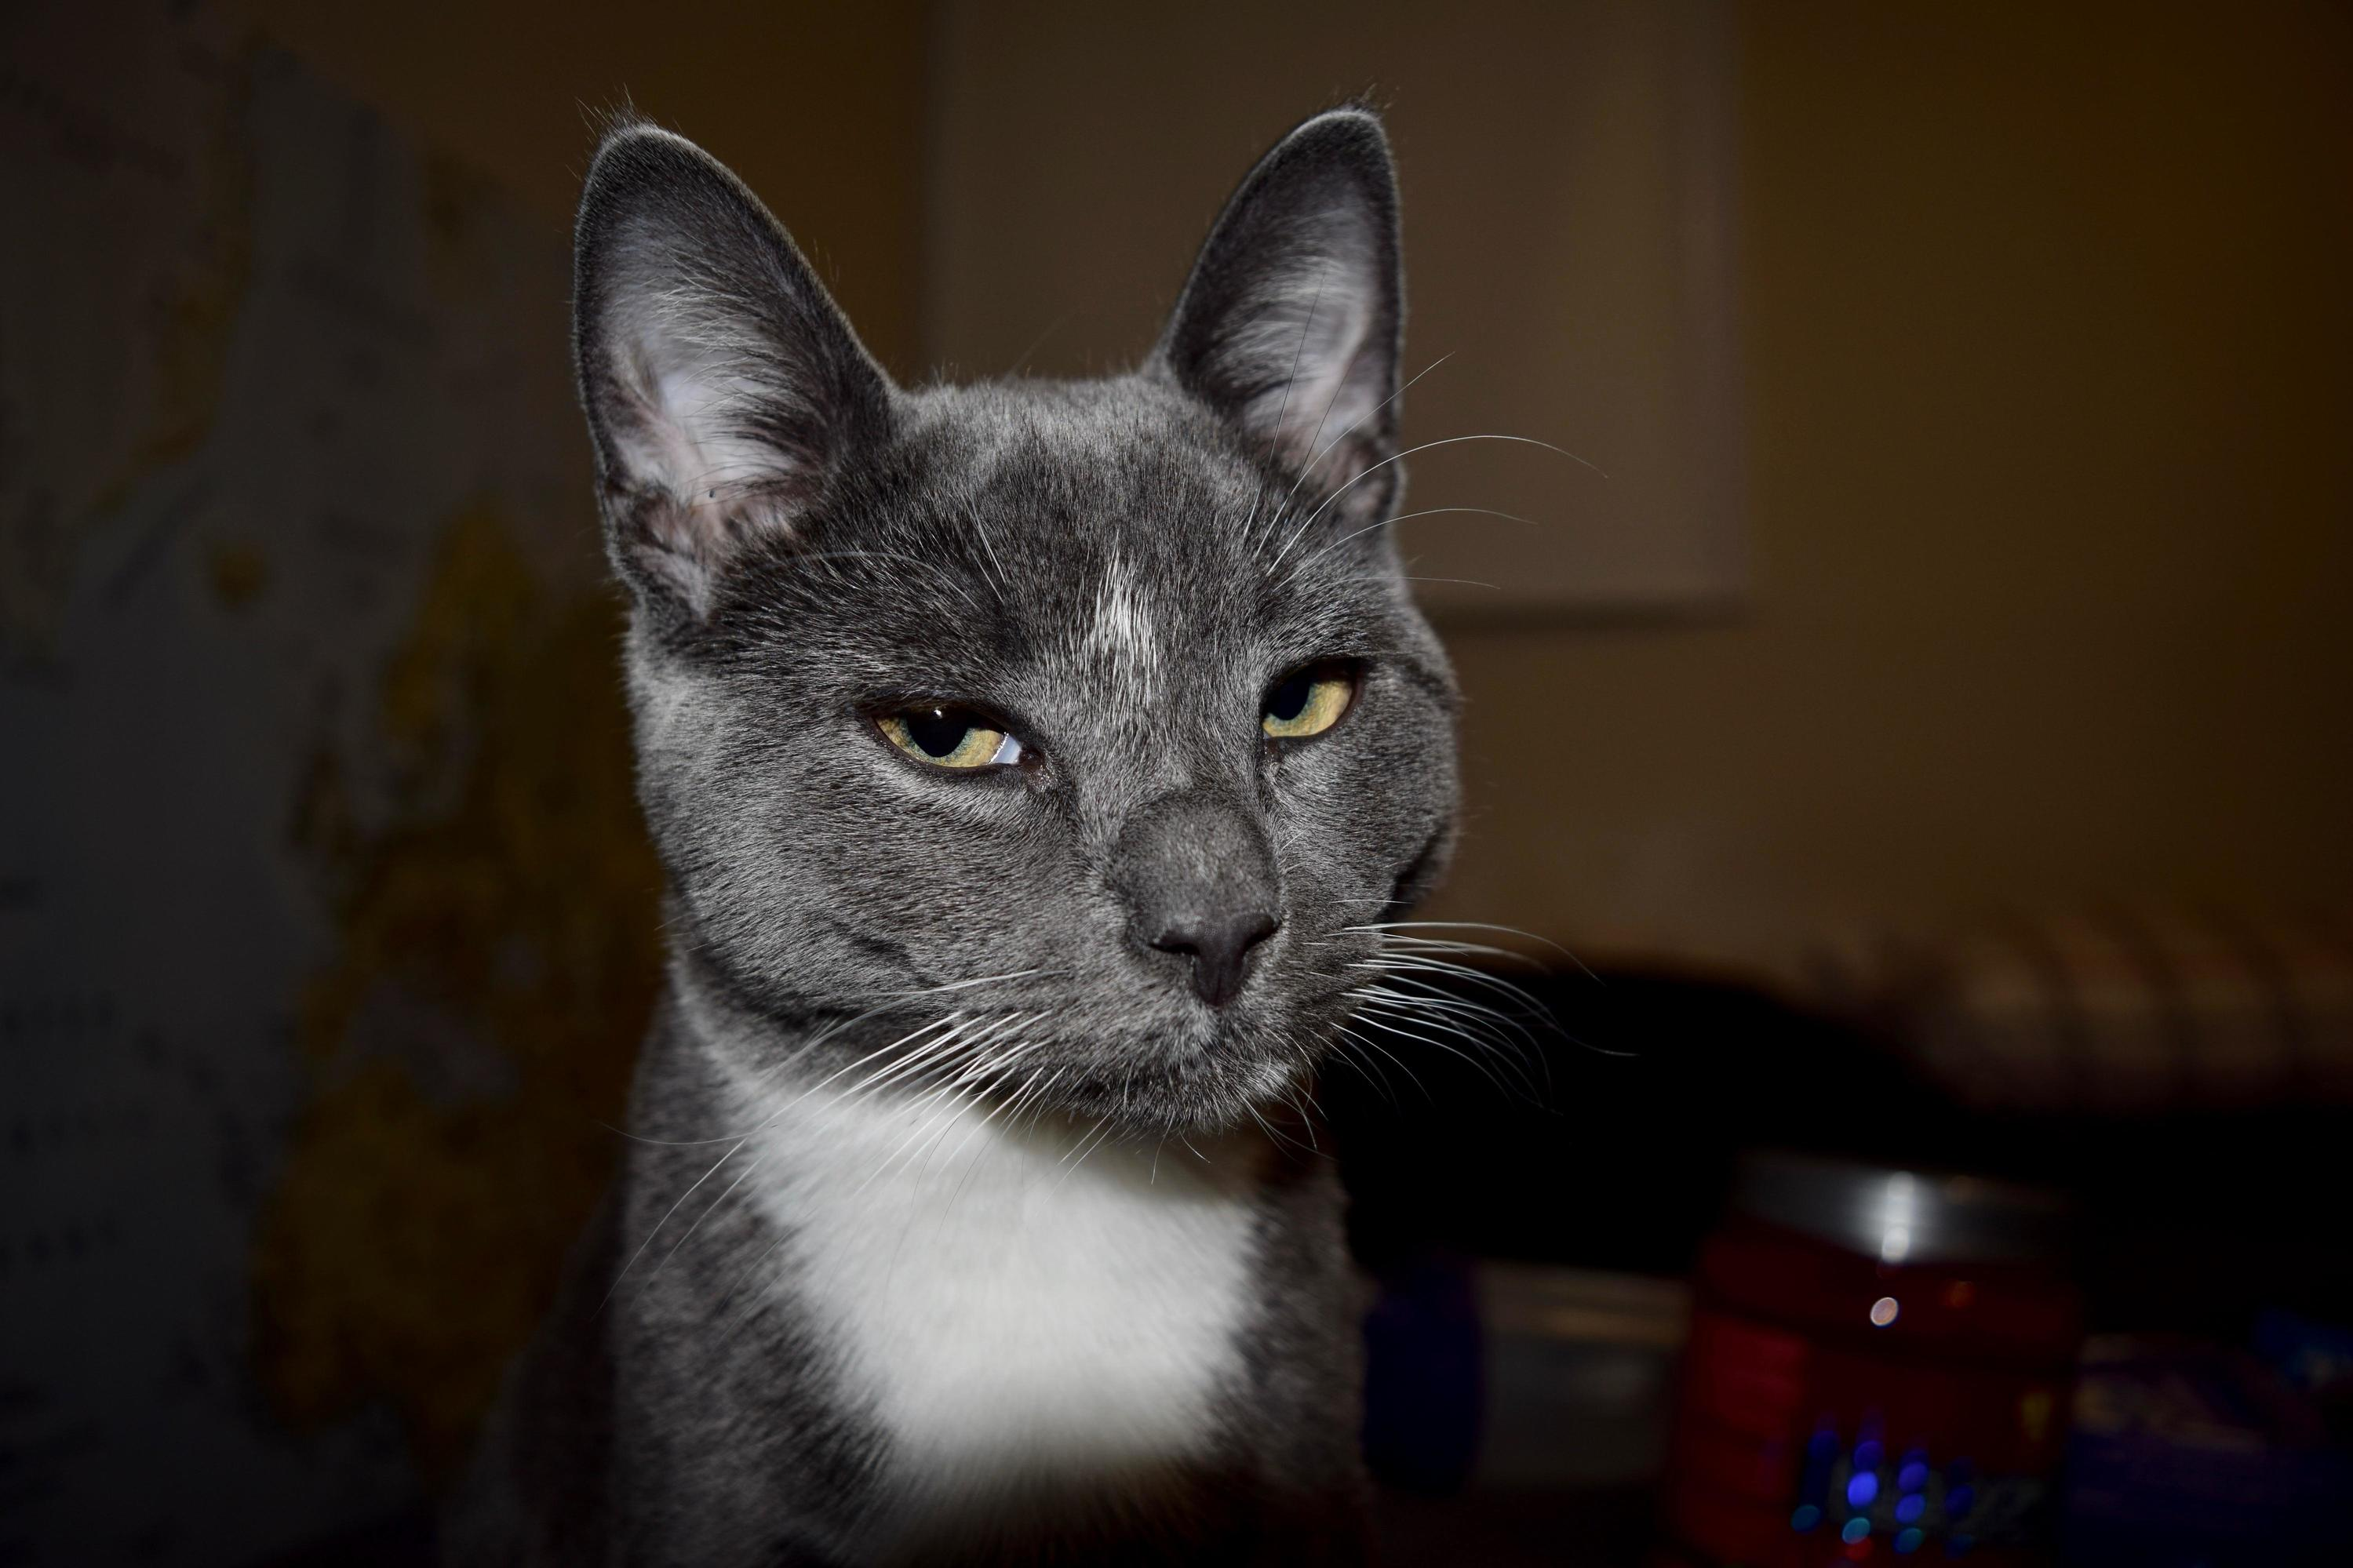 Mr. sprinkles is not impressed with my new camera